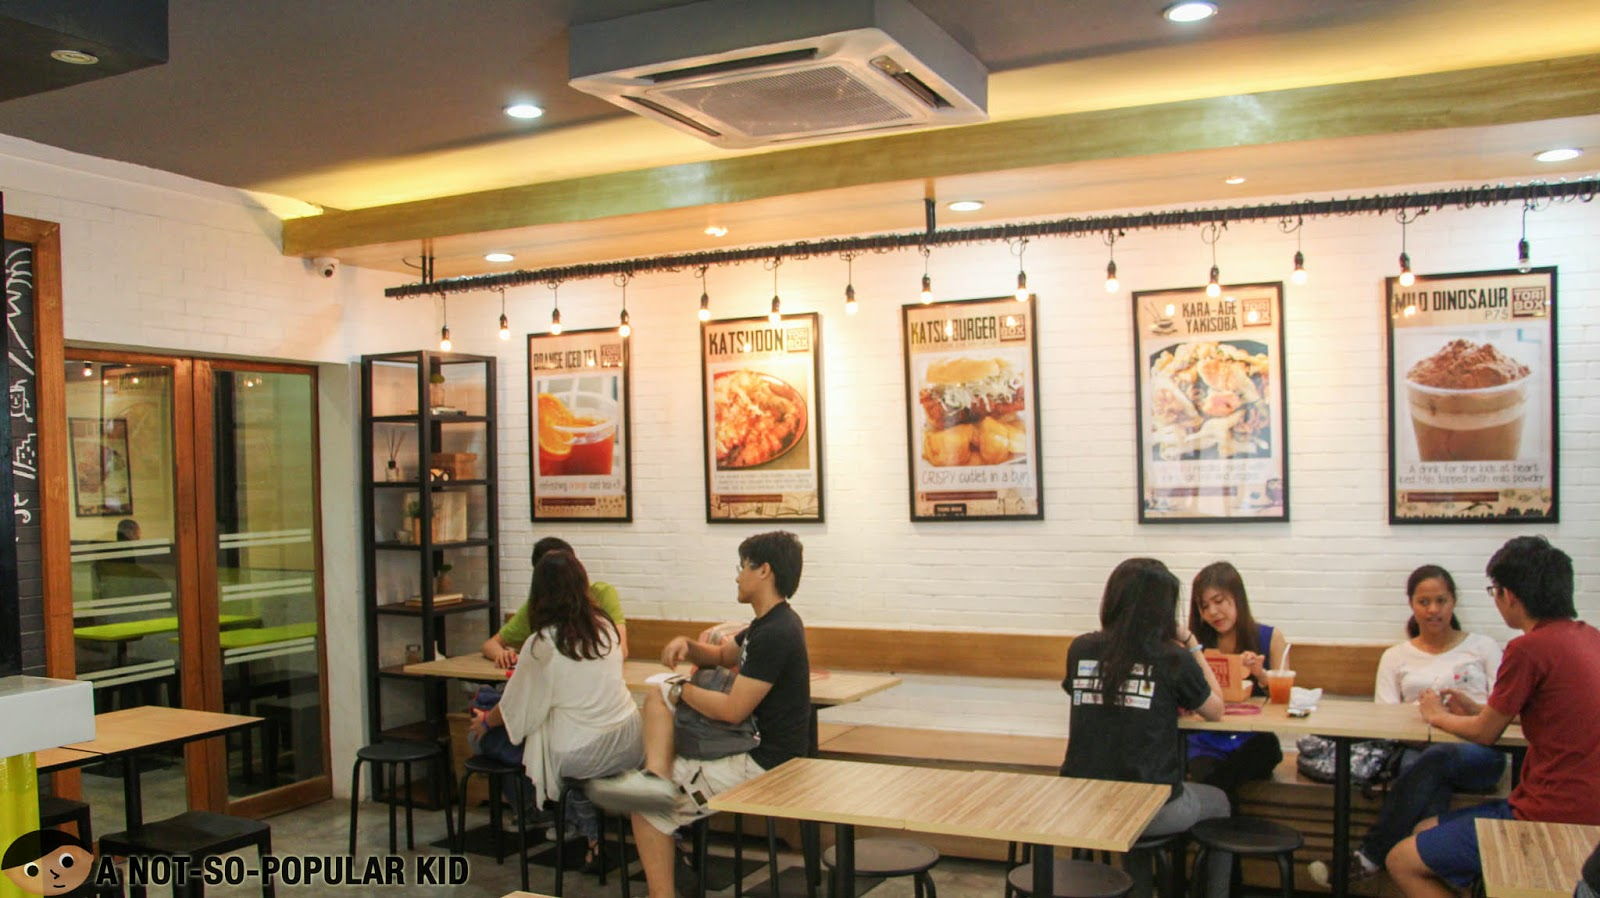 The better interior of Tori Box - Agno Street Branch